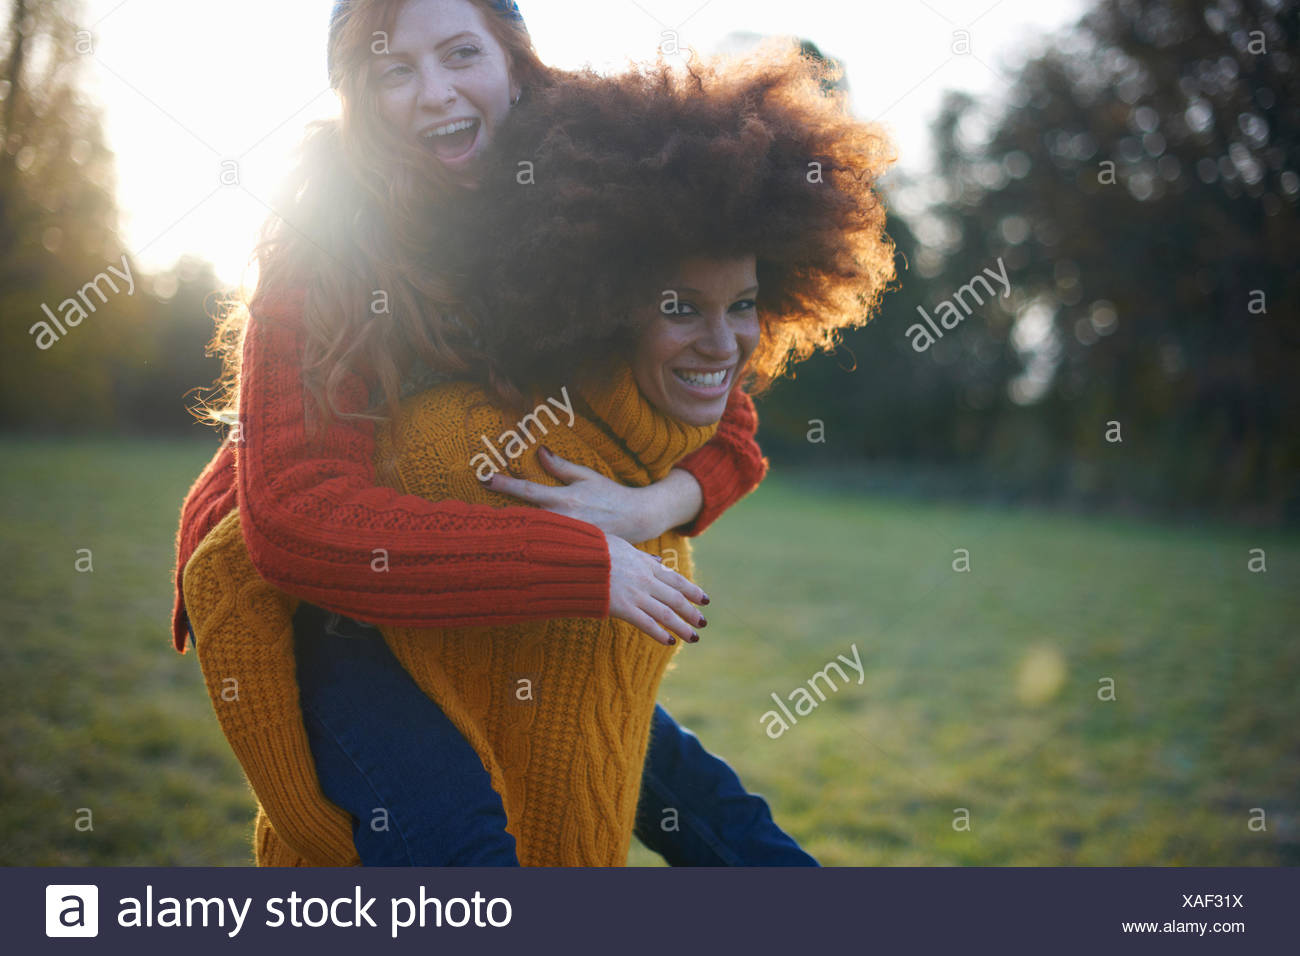 Two young women,in rural setting,young woman giving friend piggyback ride - Stock Image